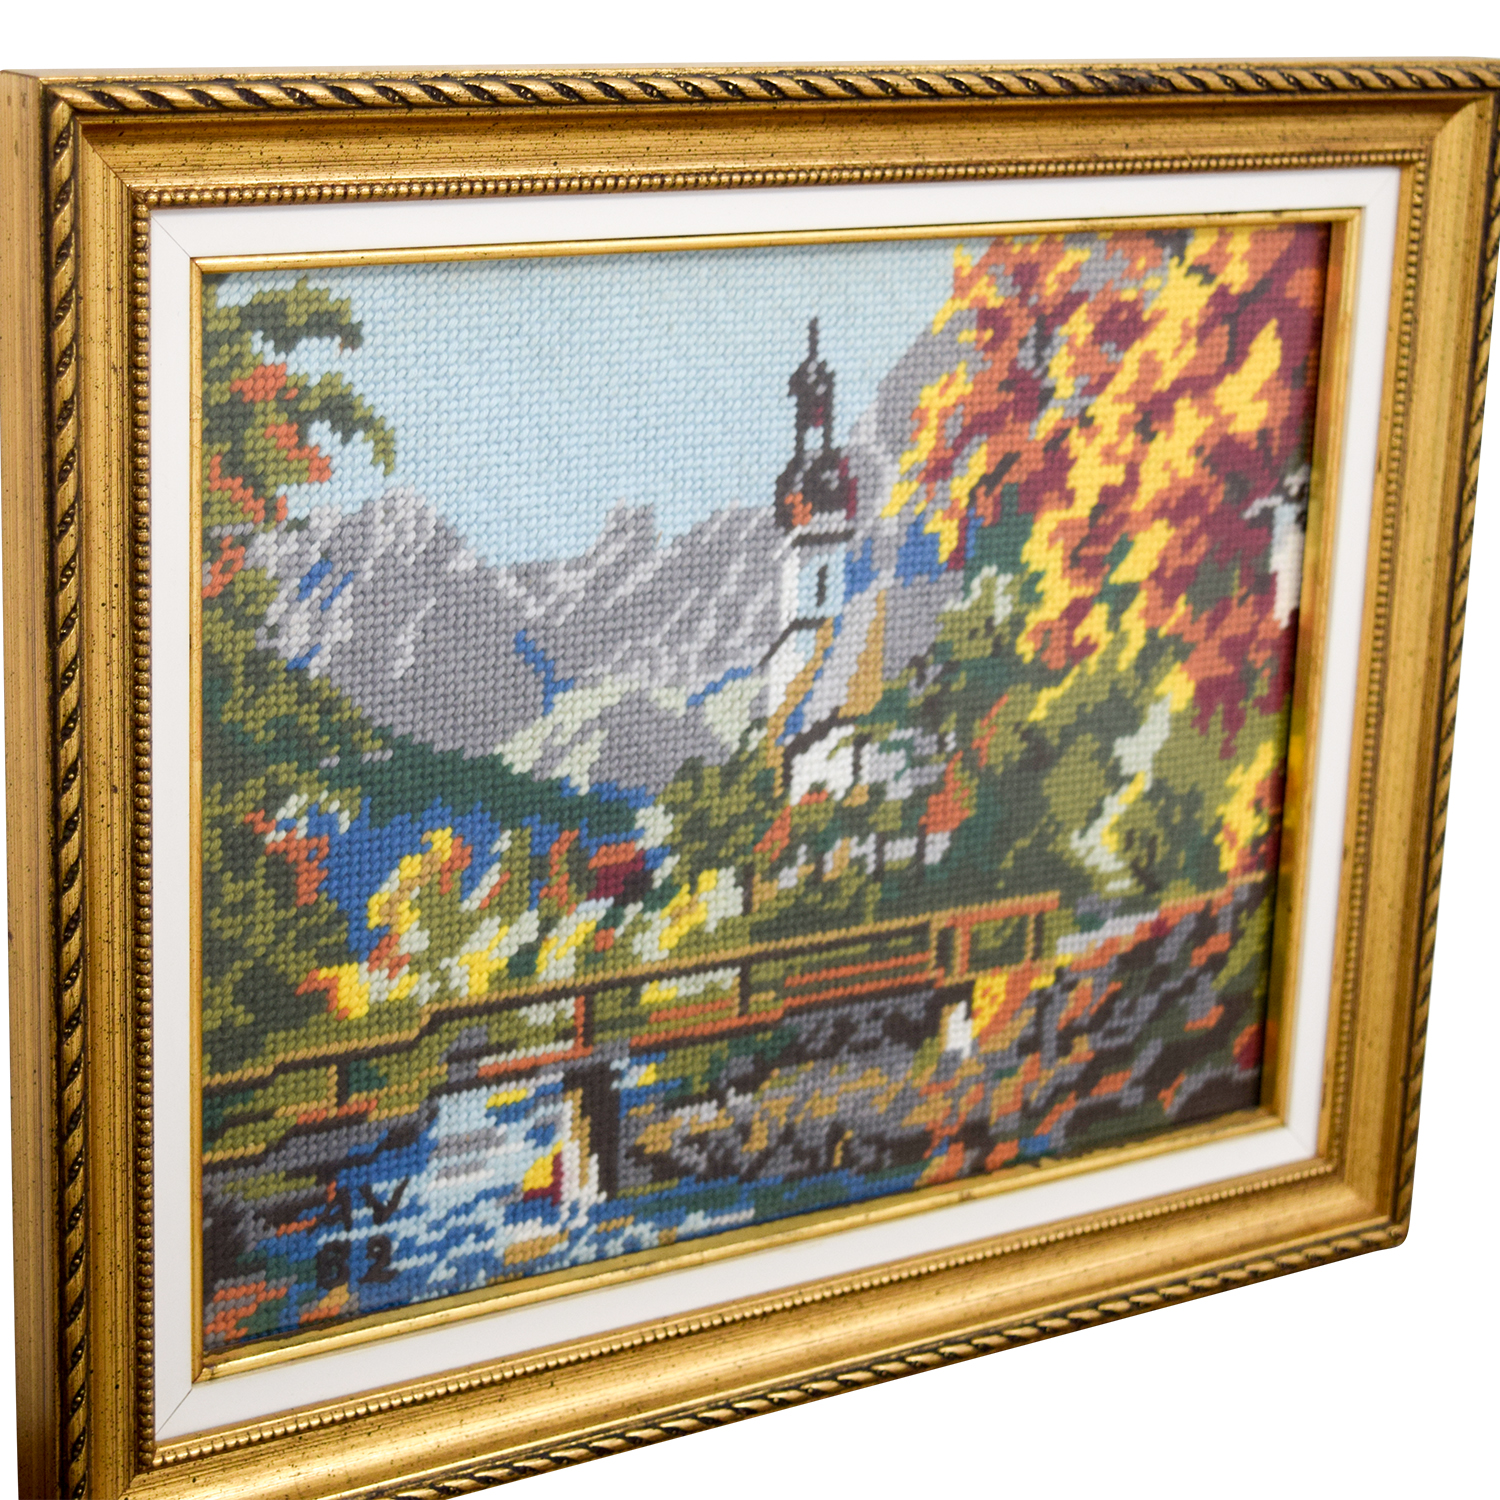 Framed Switzerland Church Bridge Needlepoint on sale